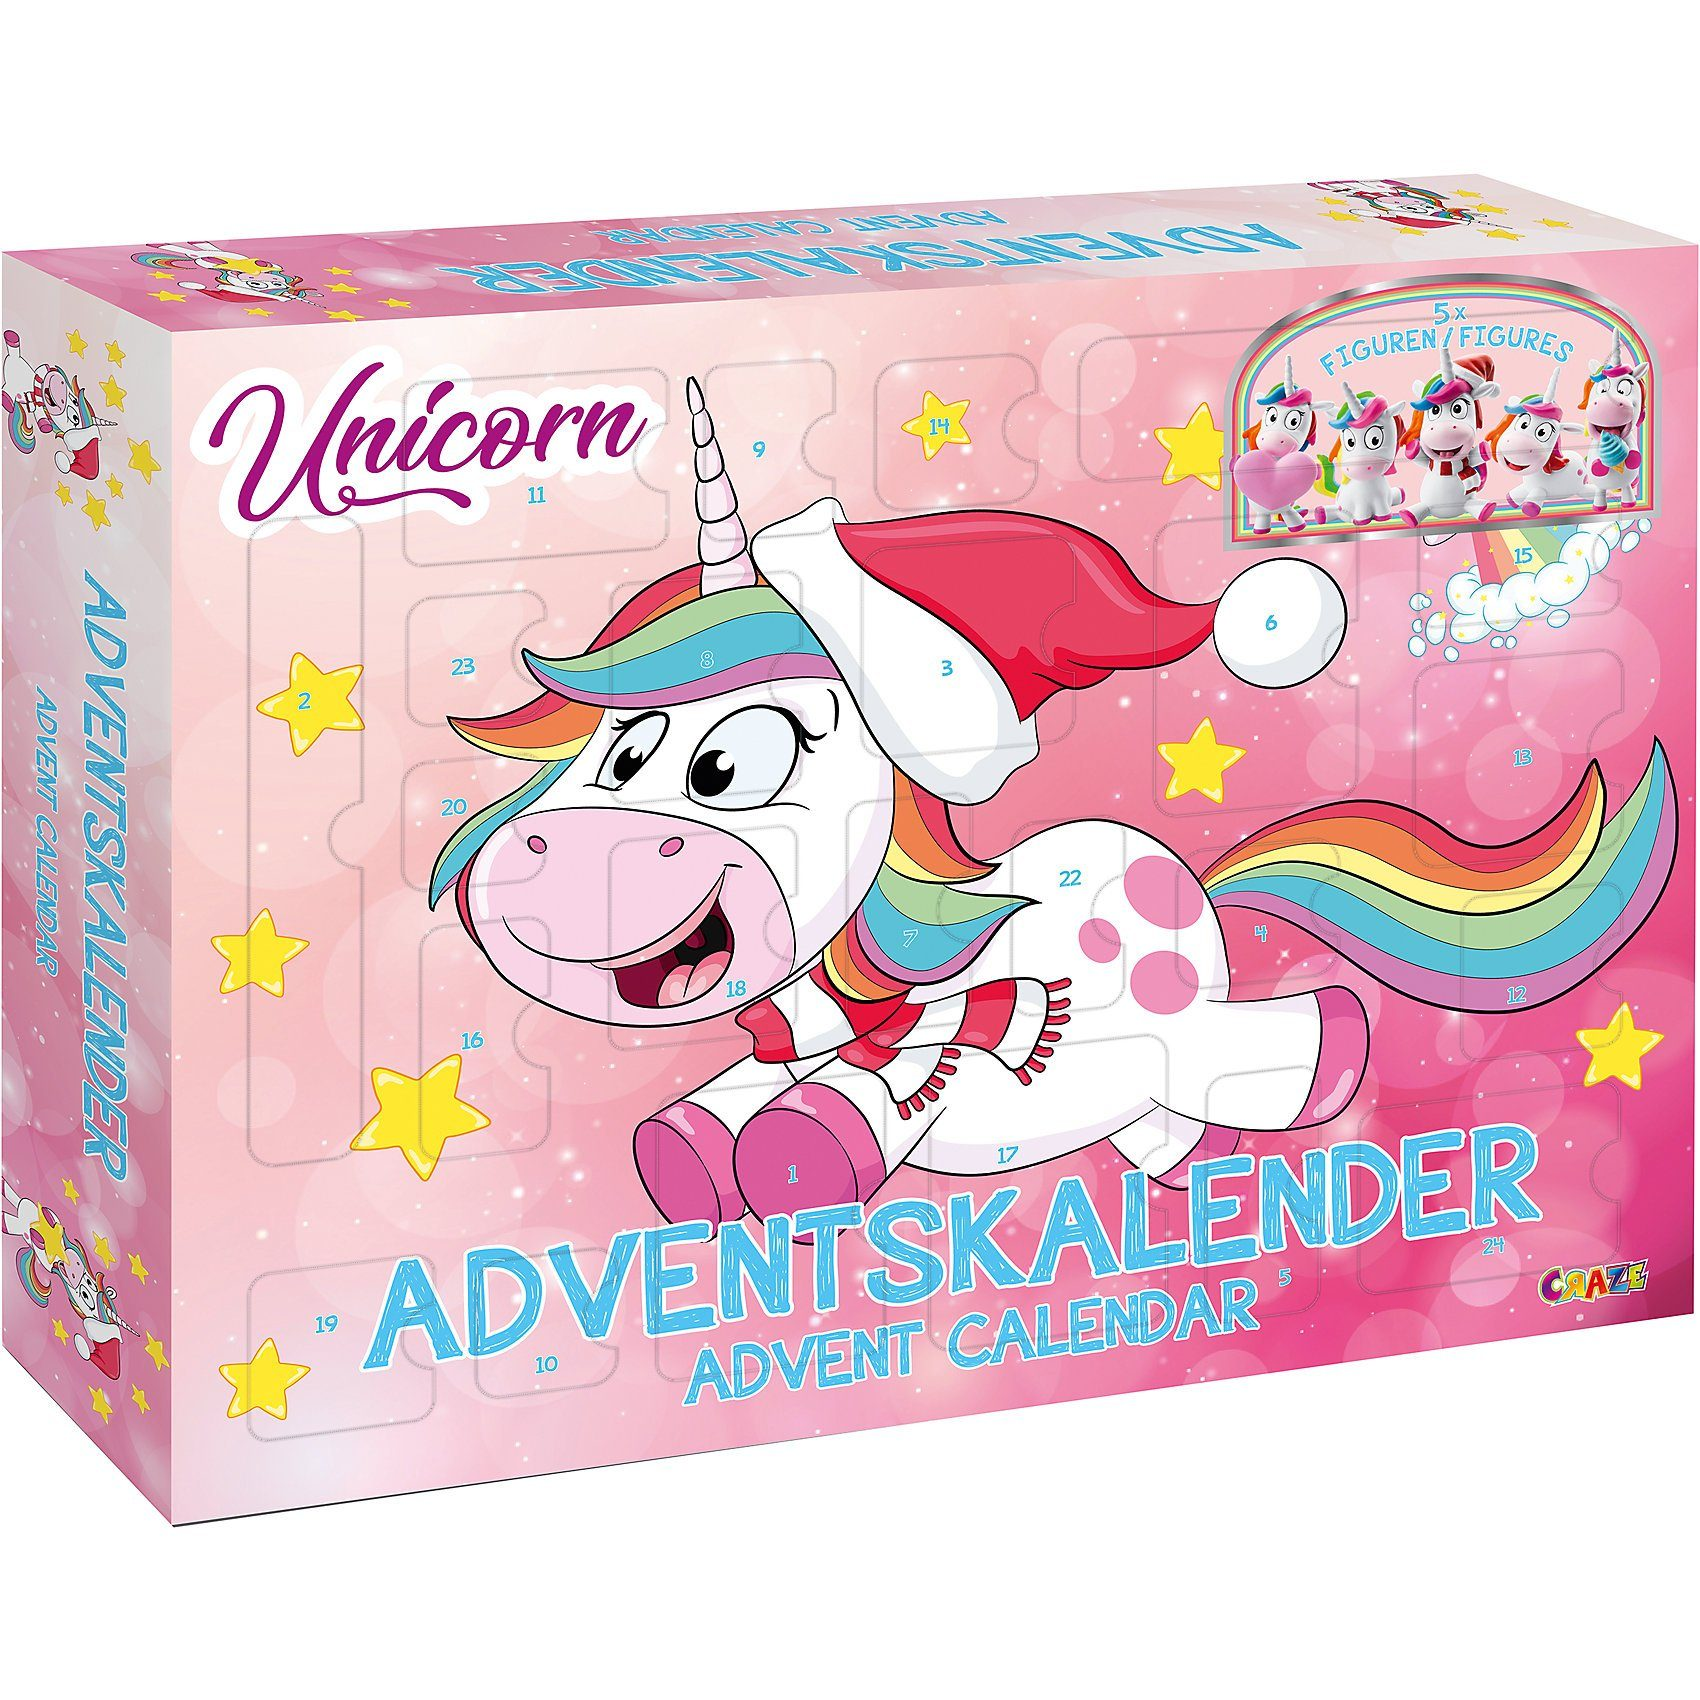 CRAZE Adventskalender UNICORN 2018